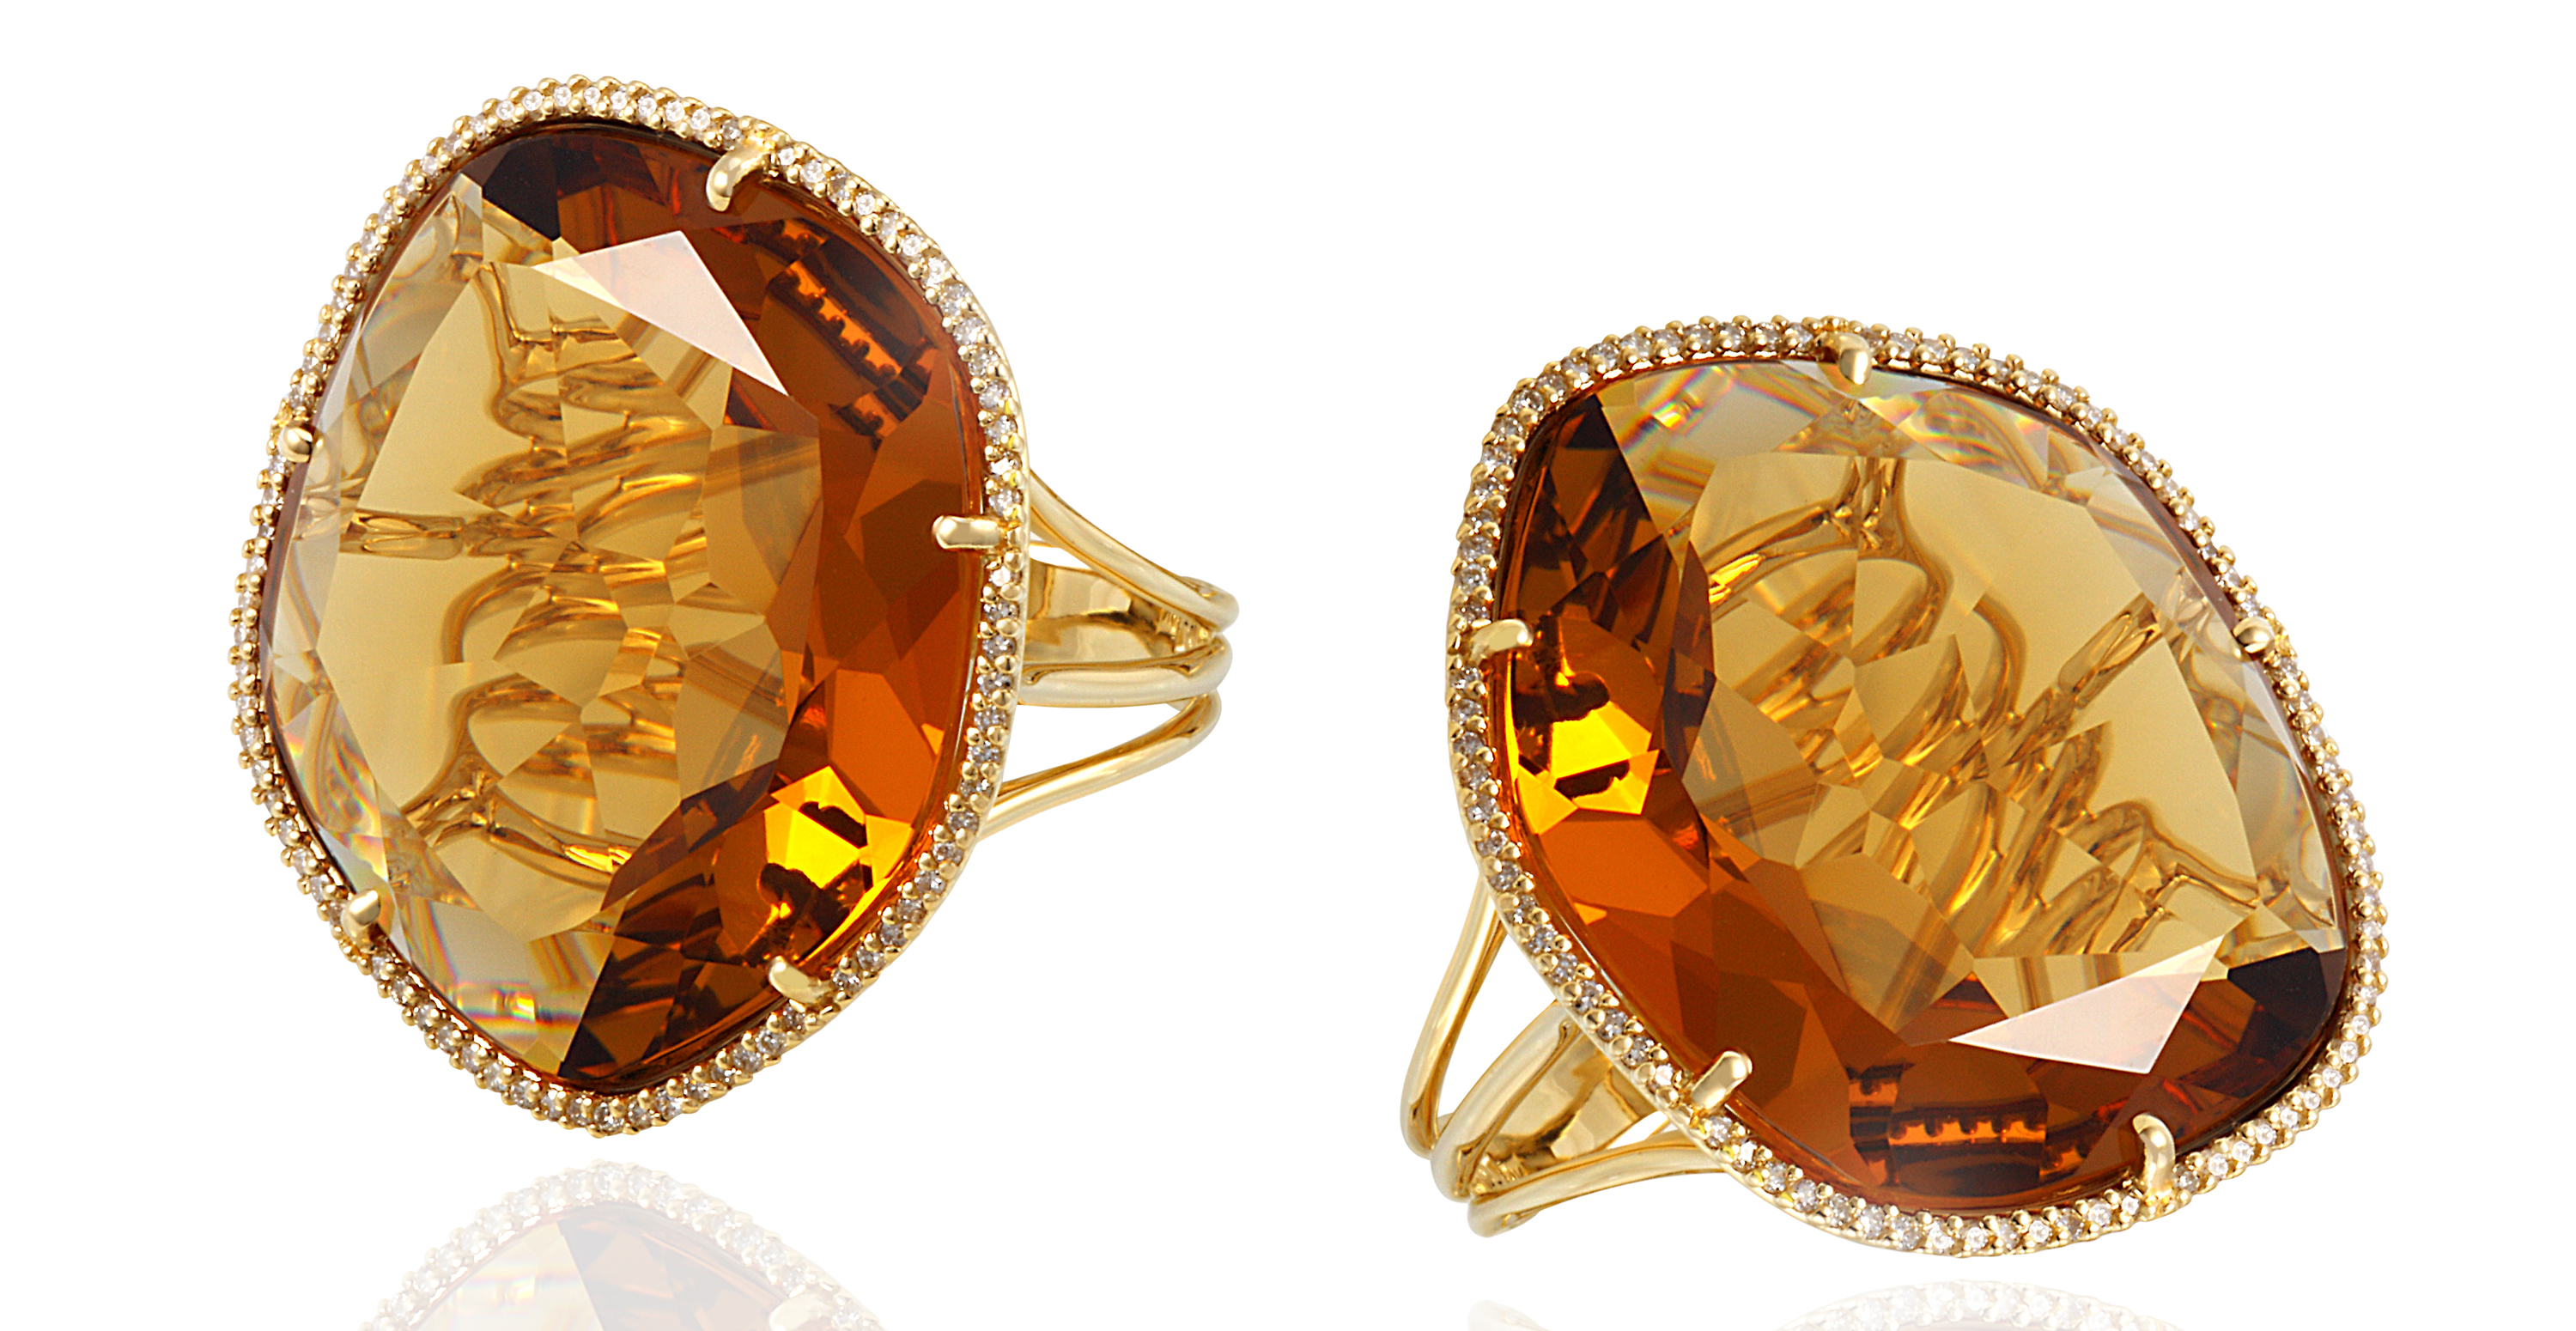 Vianna Brasil Dedalo citrine rings | JCK On Your Market